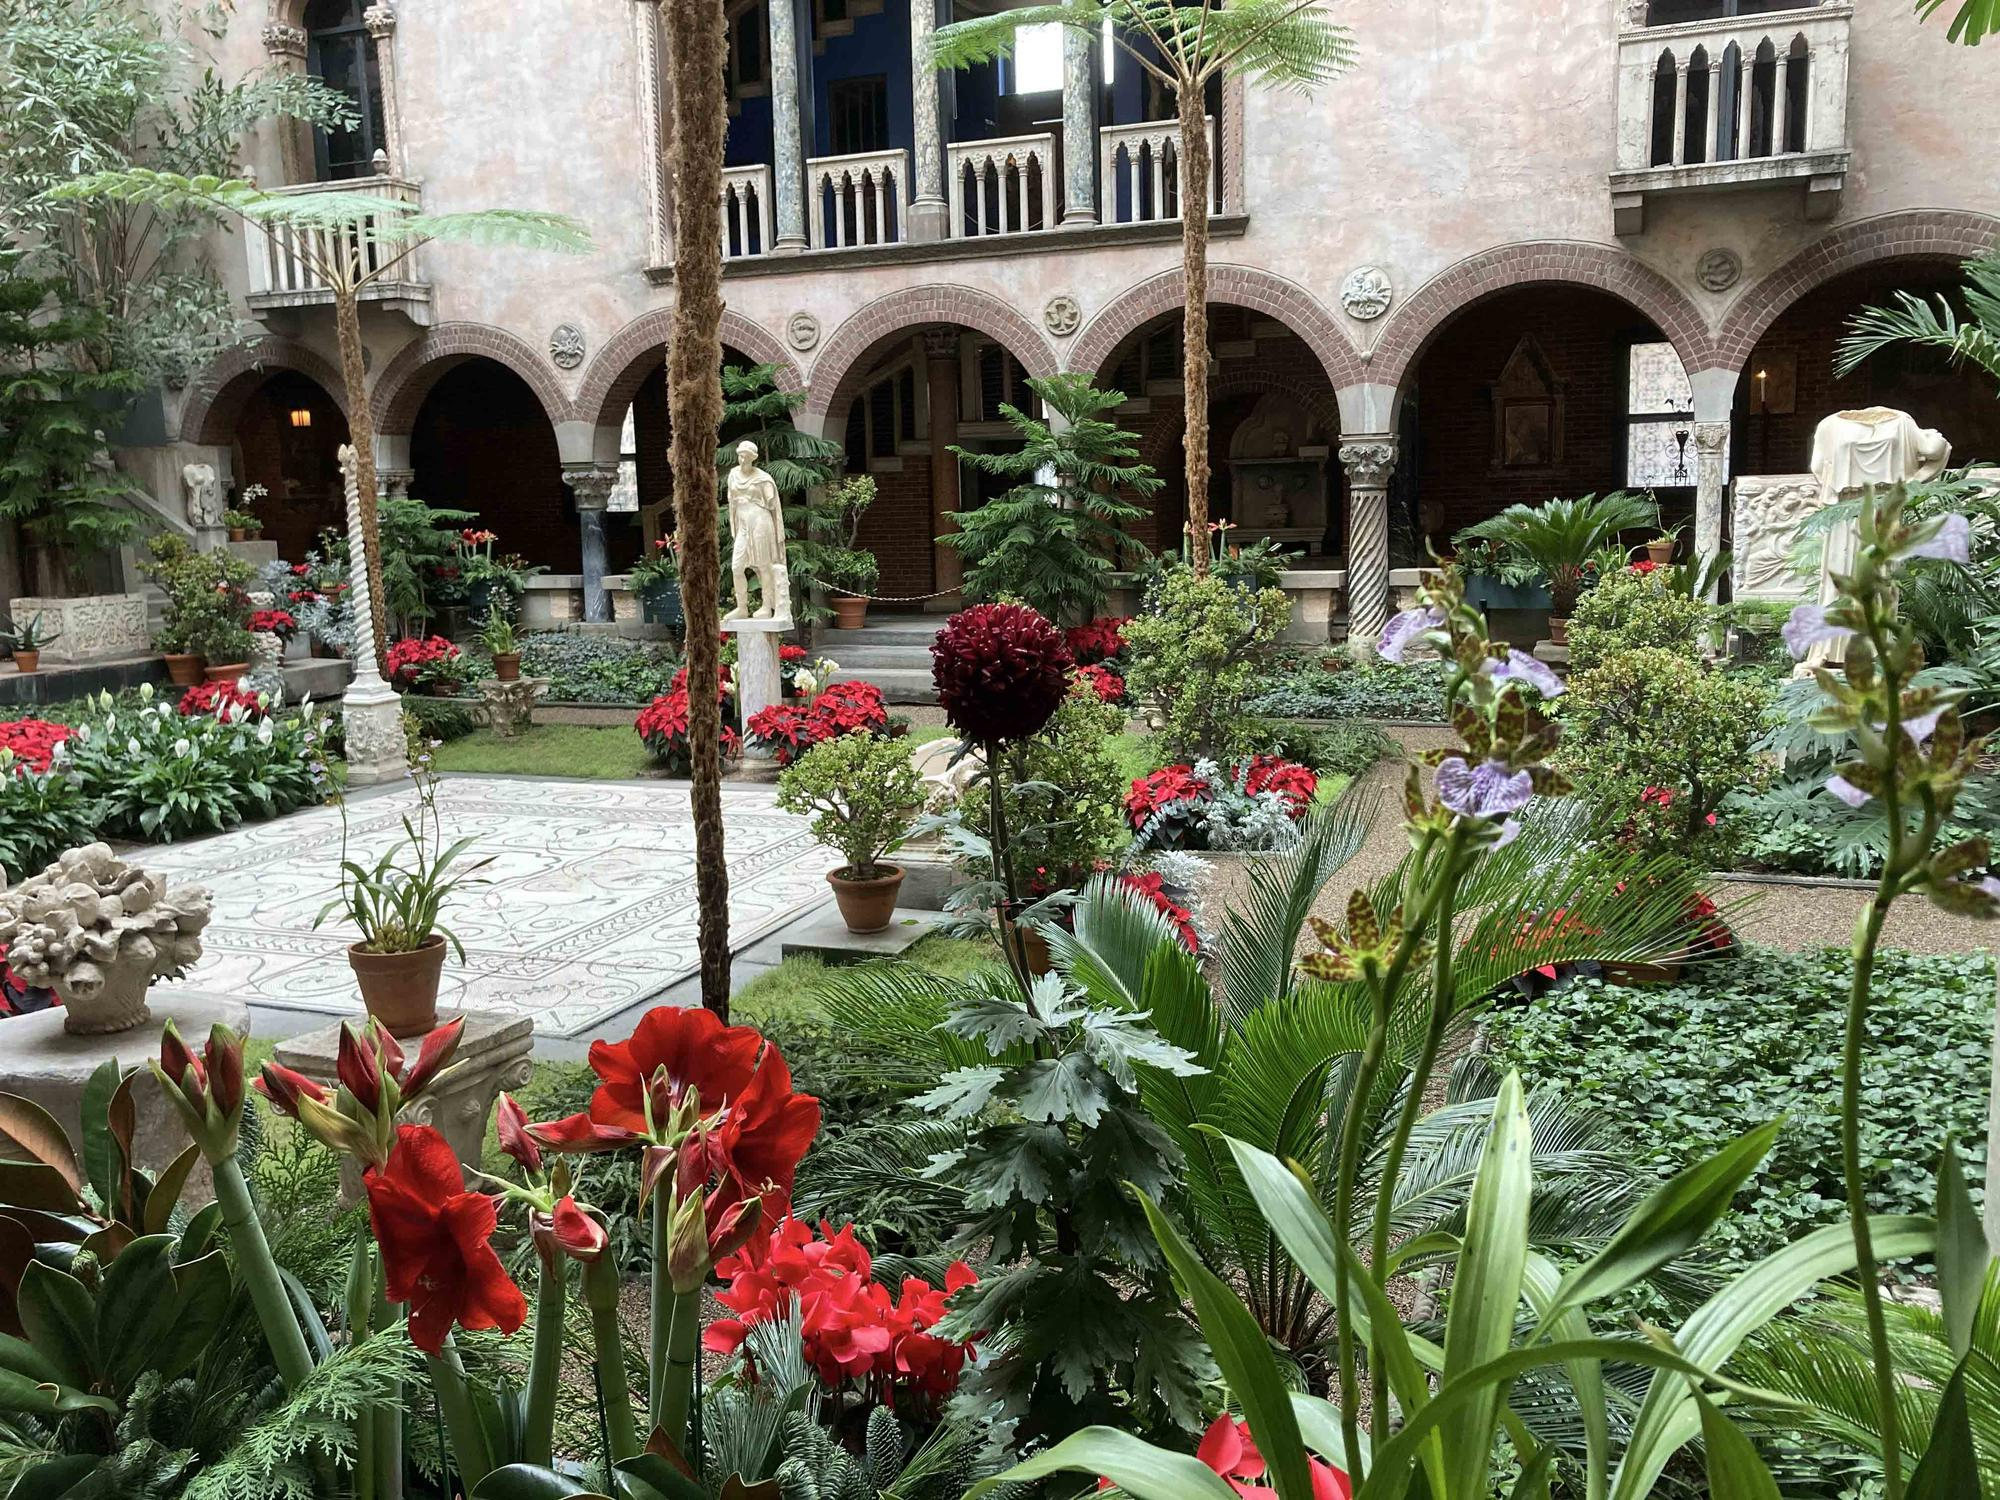 The gardeners adorn this lush holiday garden with jewel-like cyclamen and sweetly-scented Zygopetalum orchids.